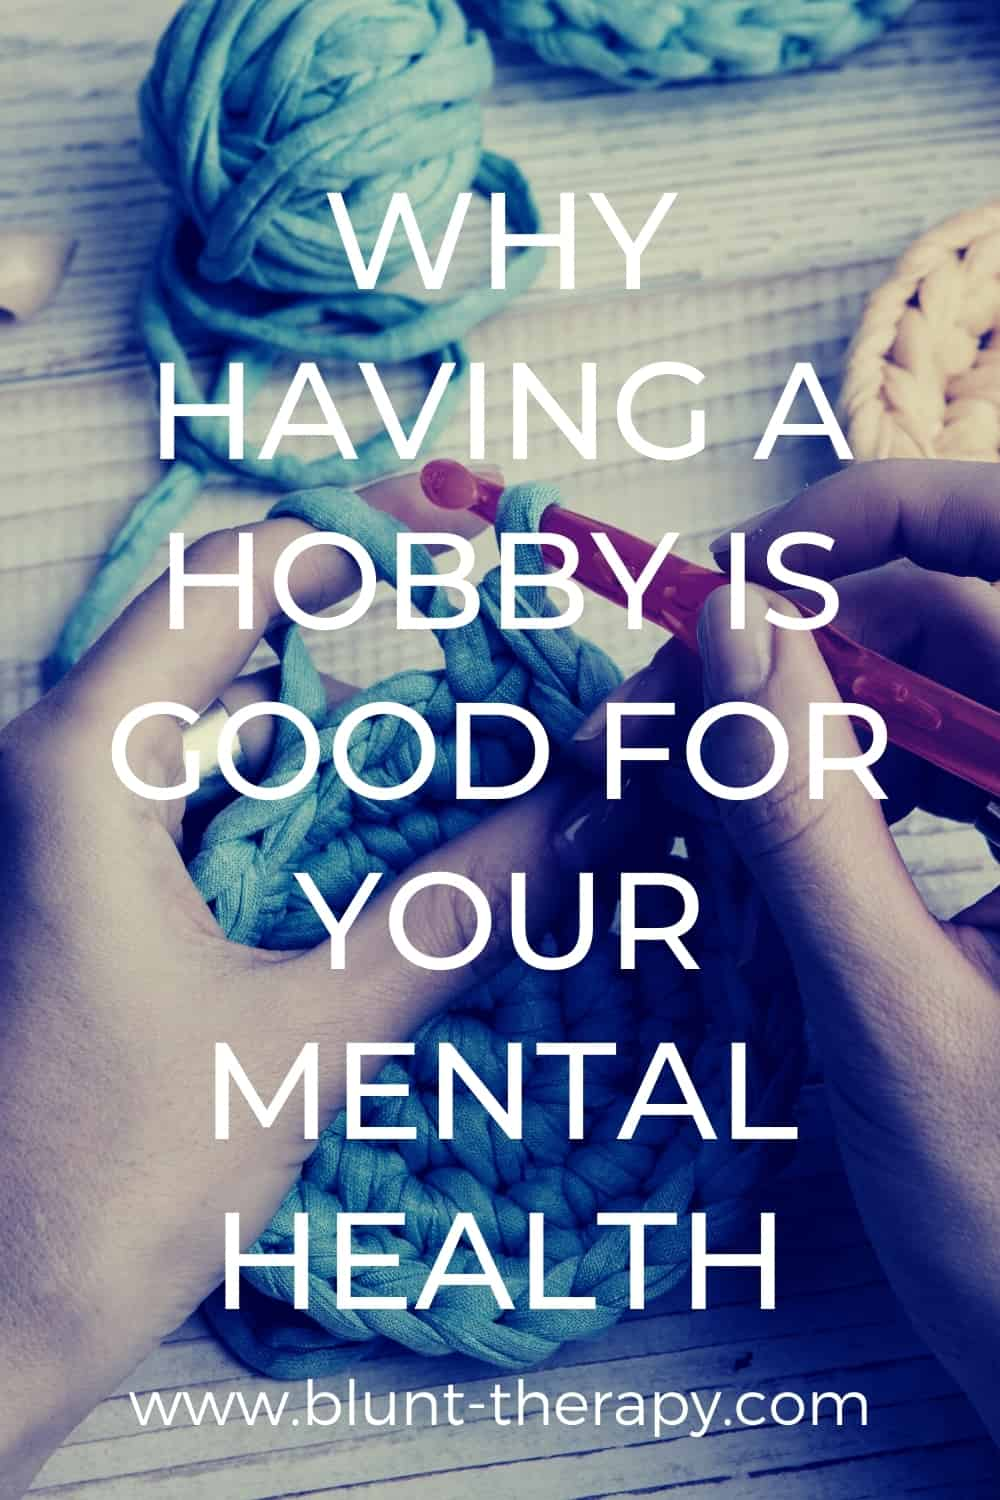 Why Having A Hobby Is Good For Your Mental Health